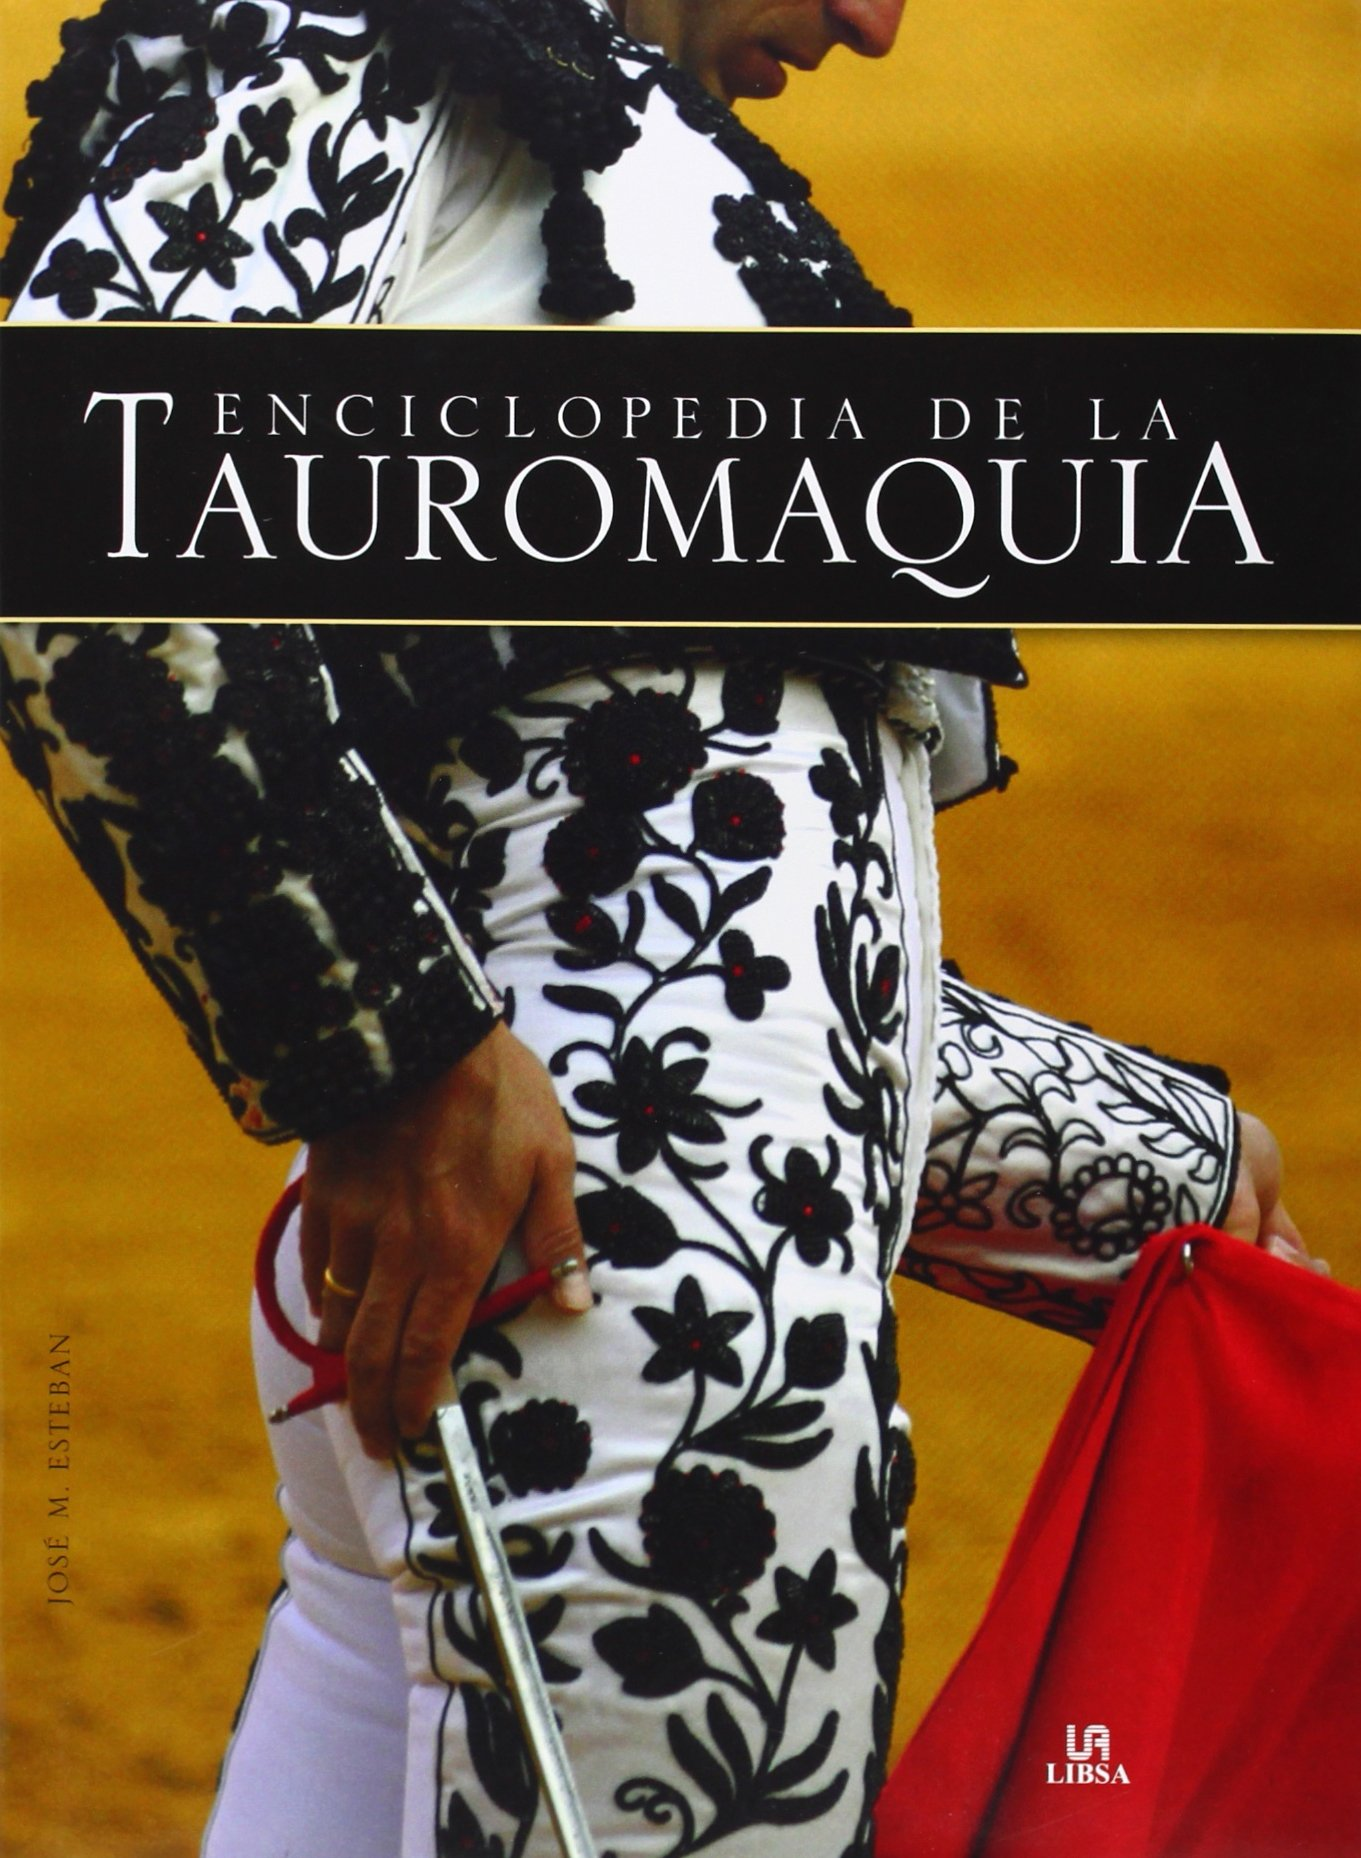 Download Enciclopedia De La Tauromaquia (Grandes Temas)